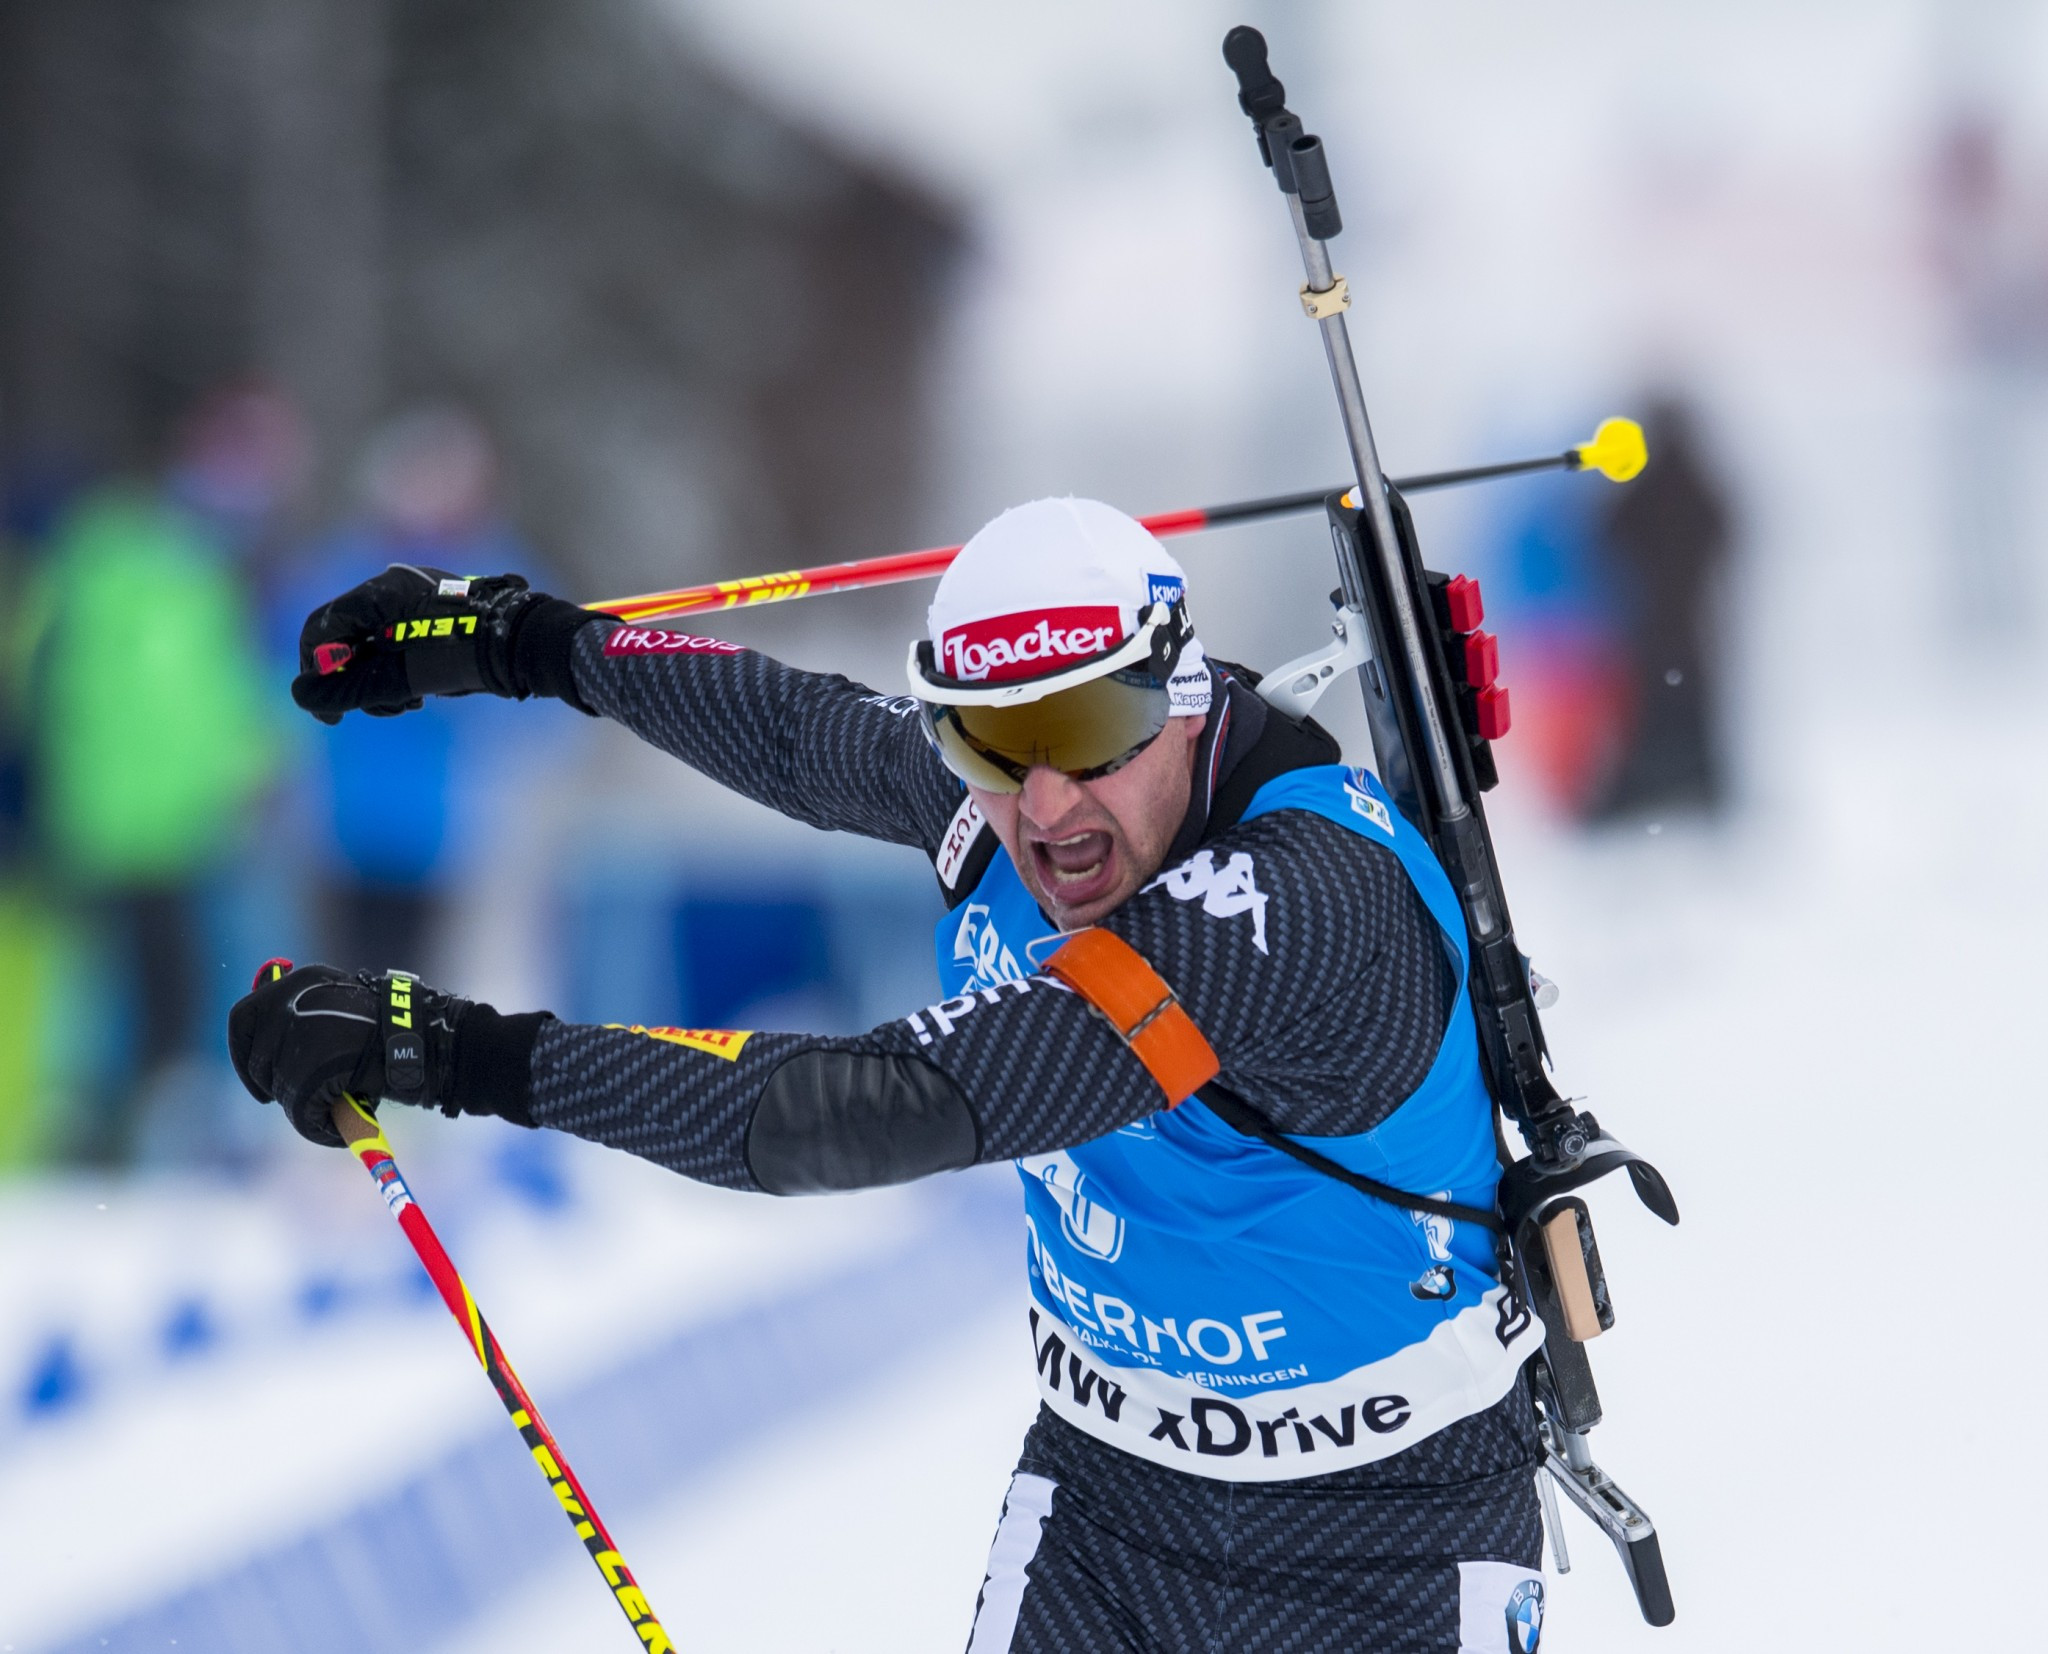 Italy's Windisch hoping for another Winter Olympic biathlon medal